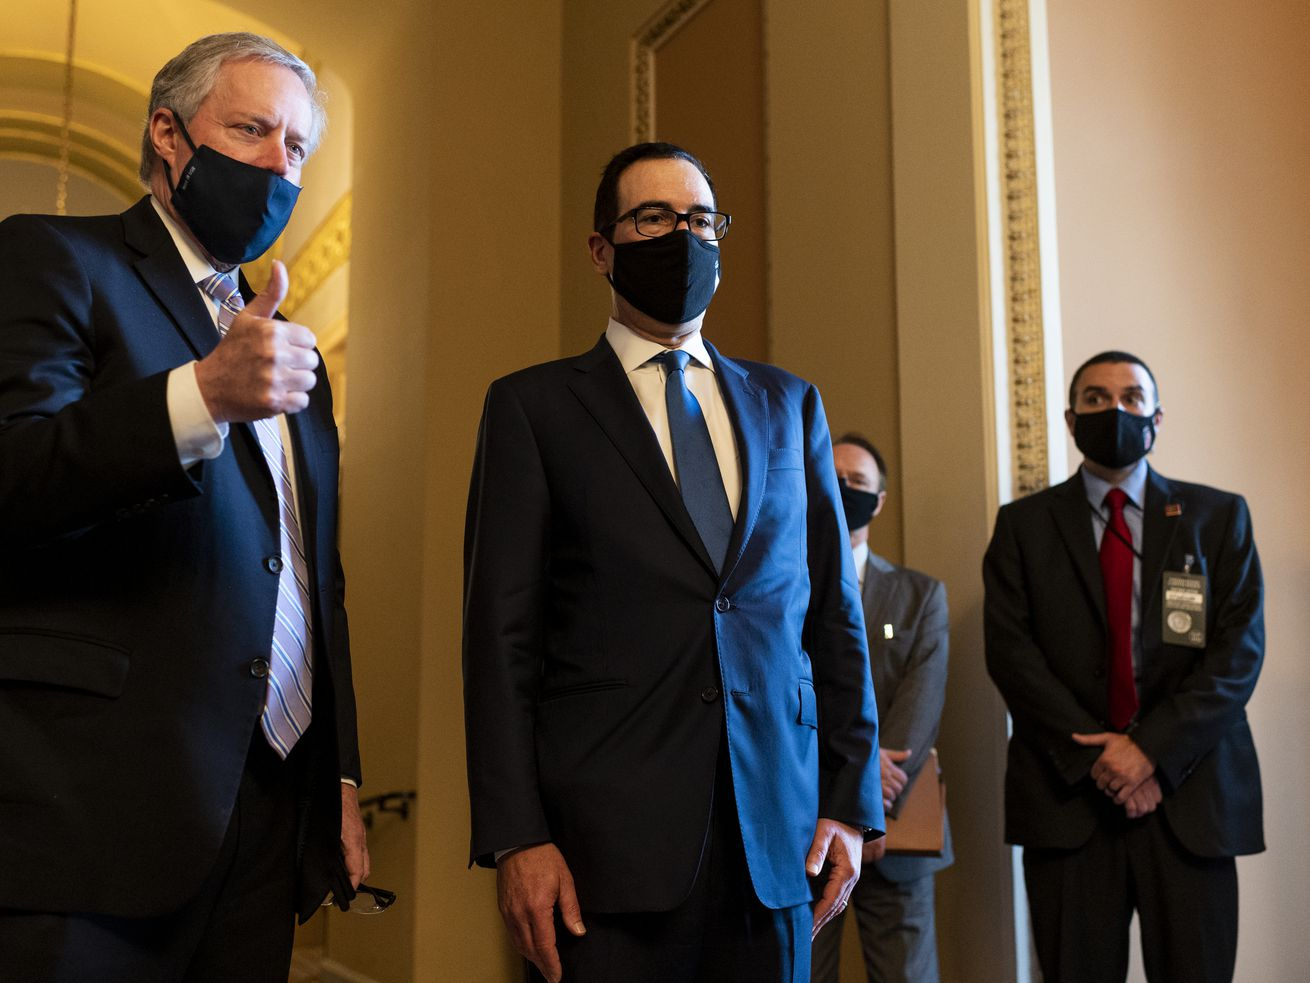 Meadows, wearing a dark suit, light blue tie, and black cloth mask, gives a thumbs up. Mnuchin, in a navy suit, dark blue tie, and black face mask, stands solemnly with his hands stiff against his sides.